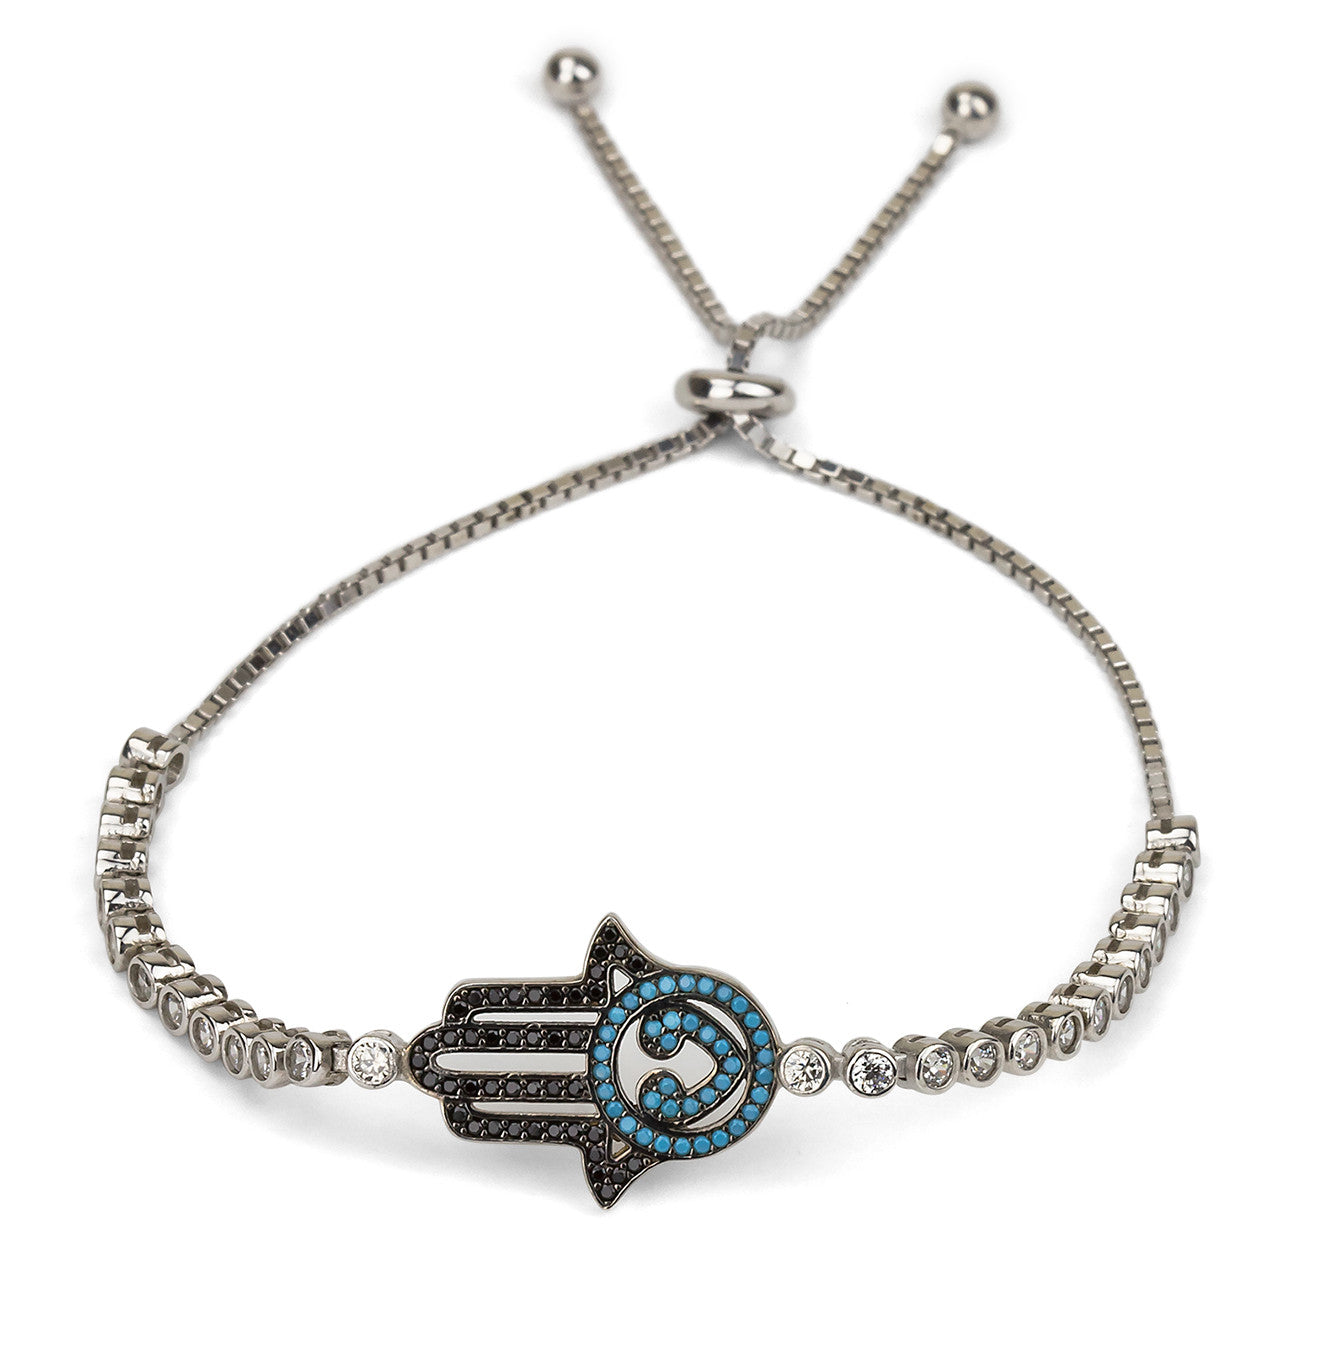 Hamsa Hand Adjustable Eye Shaped Tennis Bracelet Silver 925